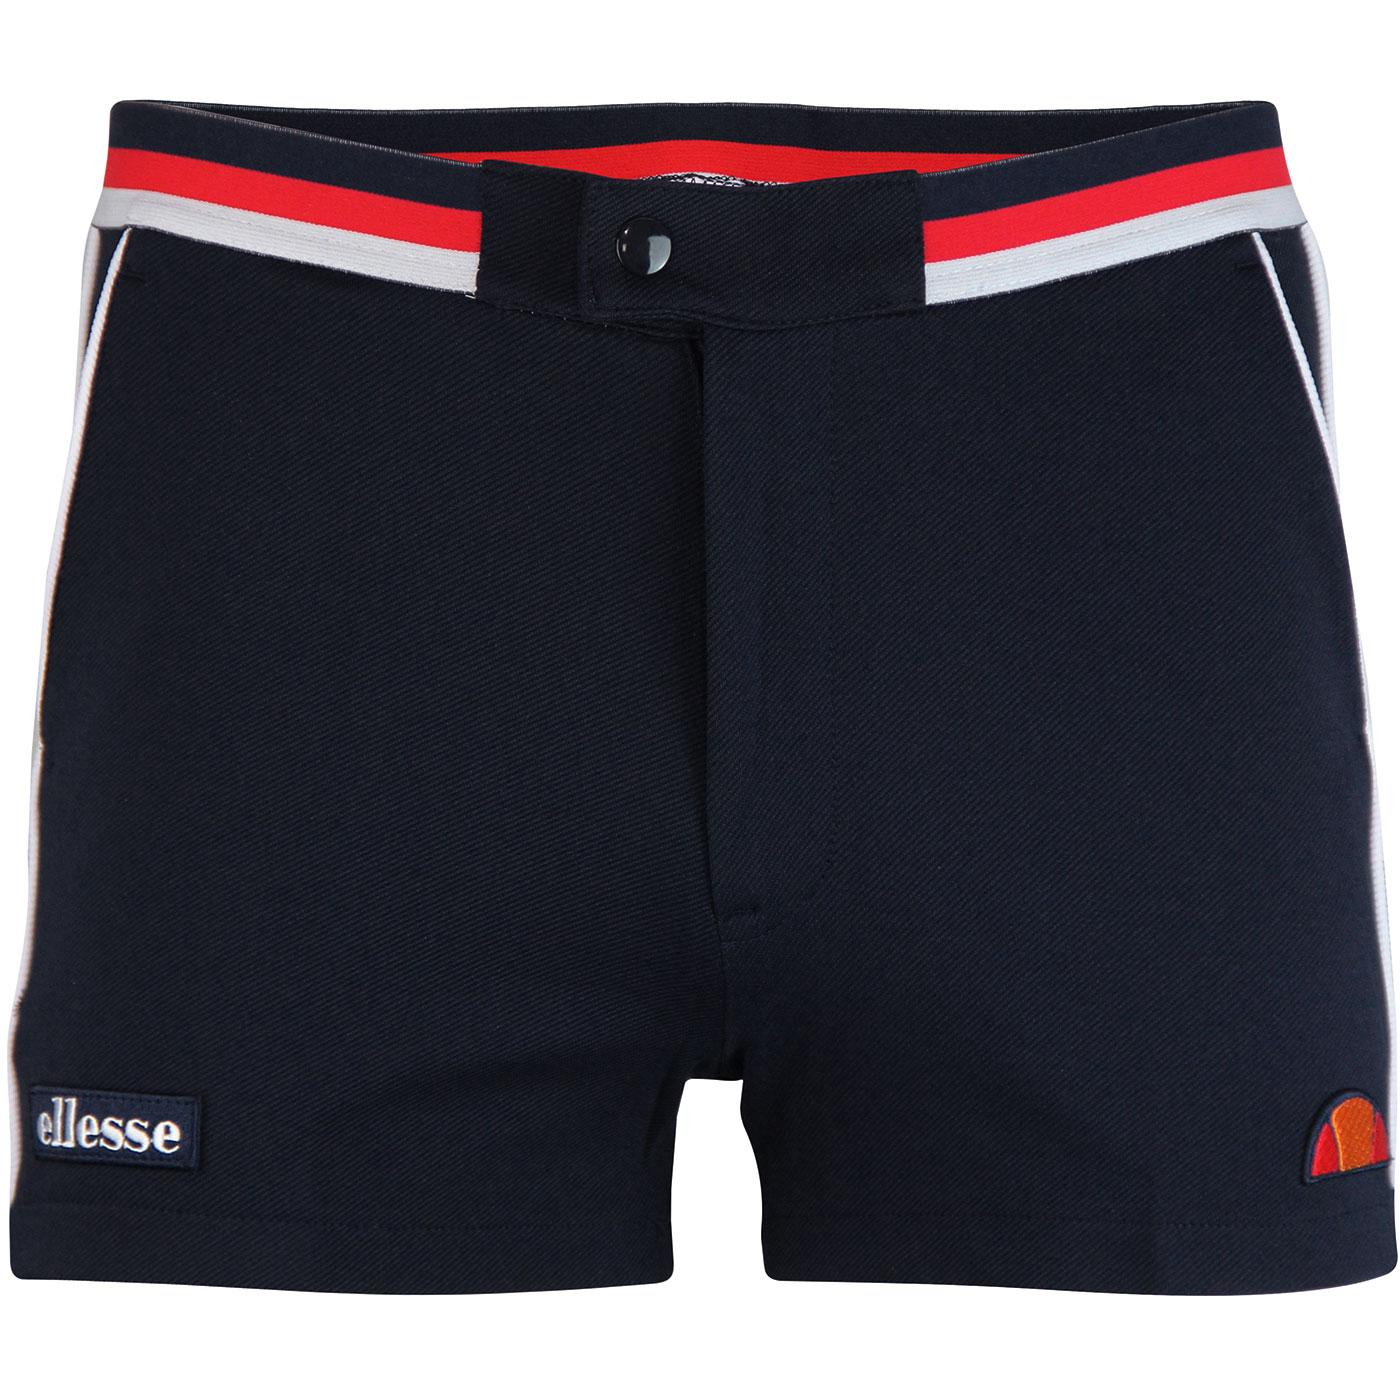 Knapp ELLESSE Men's Retro 70s Tennis Shorts (Navy)